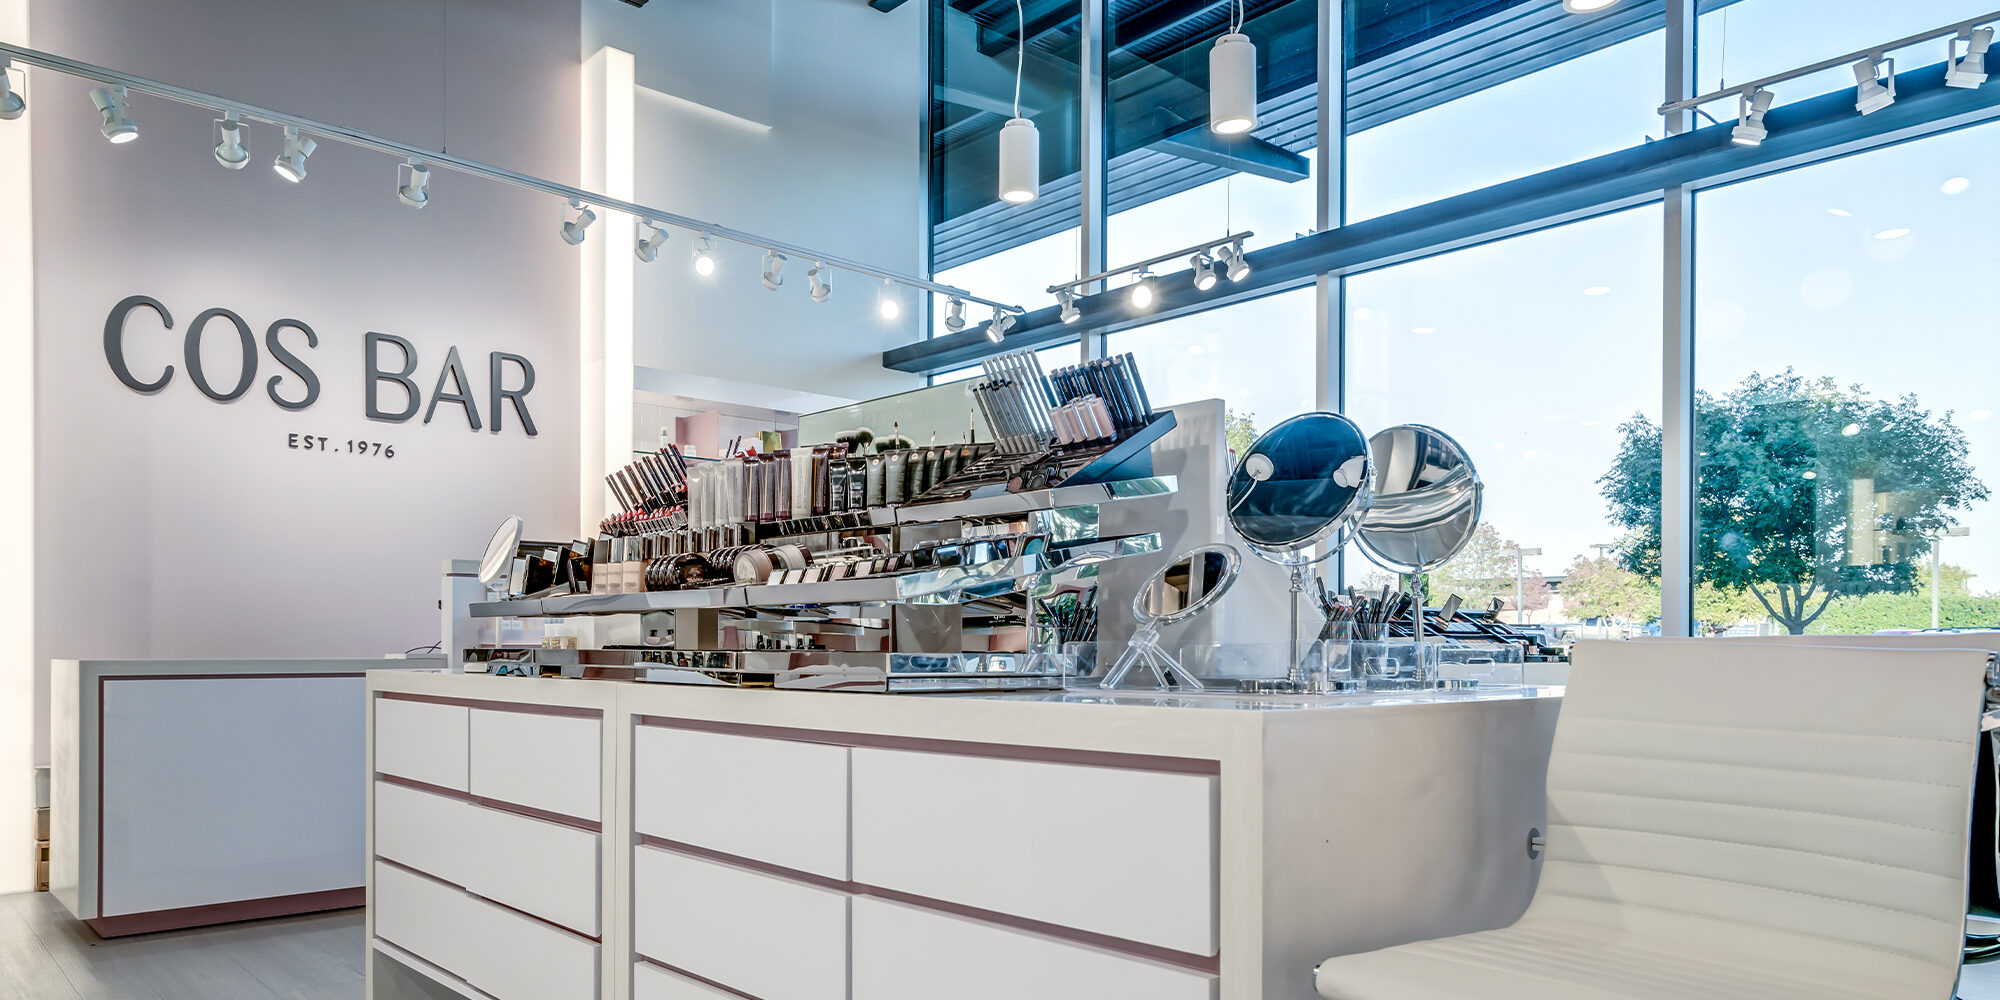 Adit Retailer Spotlight: CEO Oliver Garfield On What Makes A Beauty Brand Successful At Cos Bar